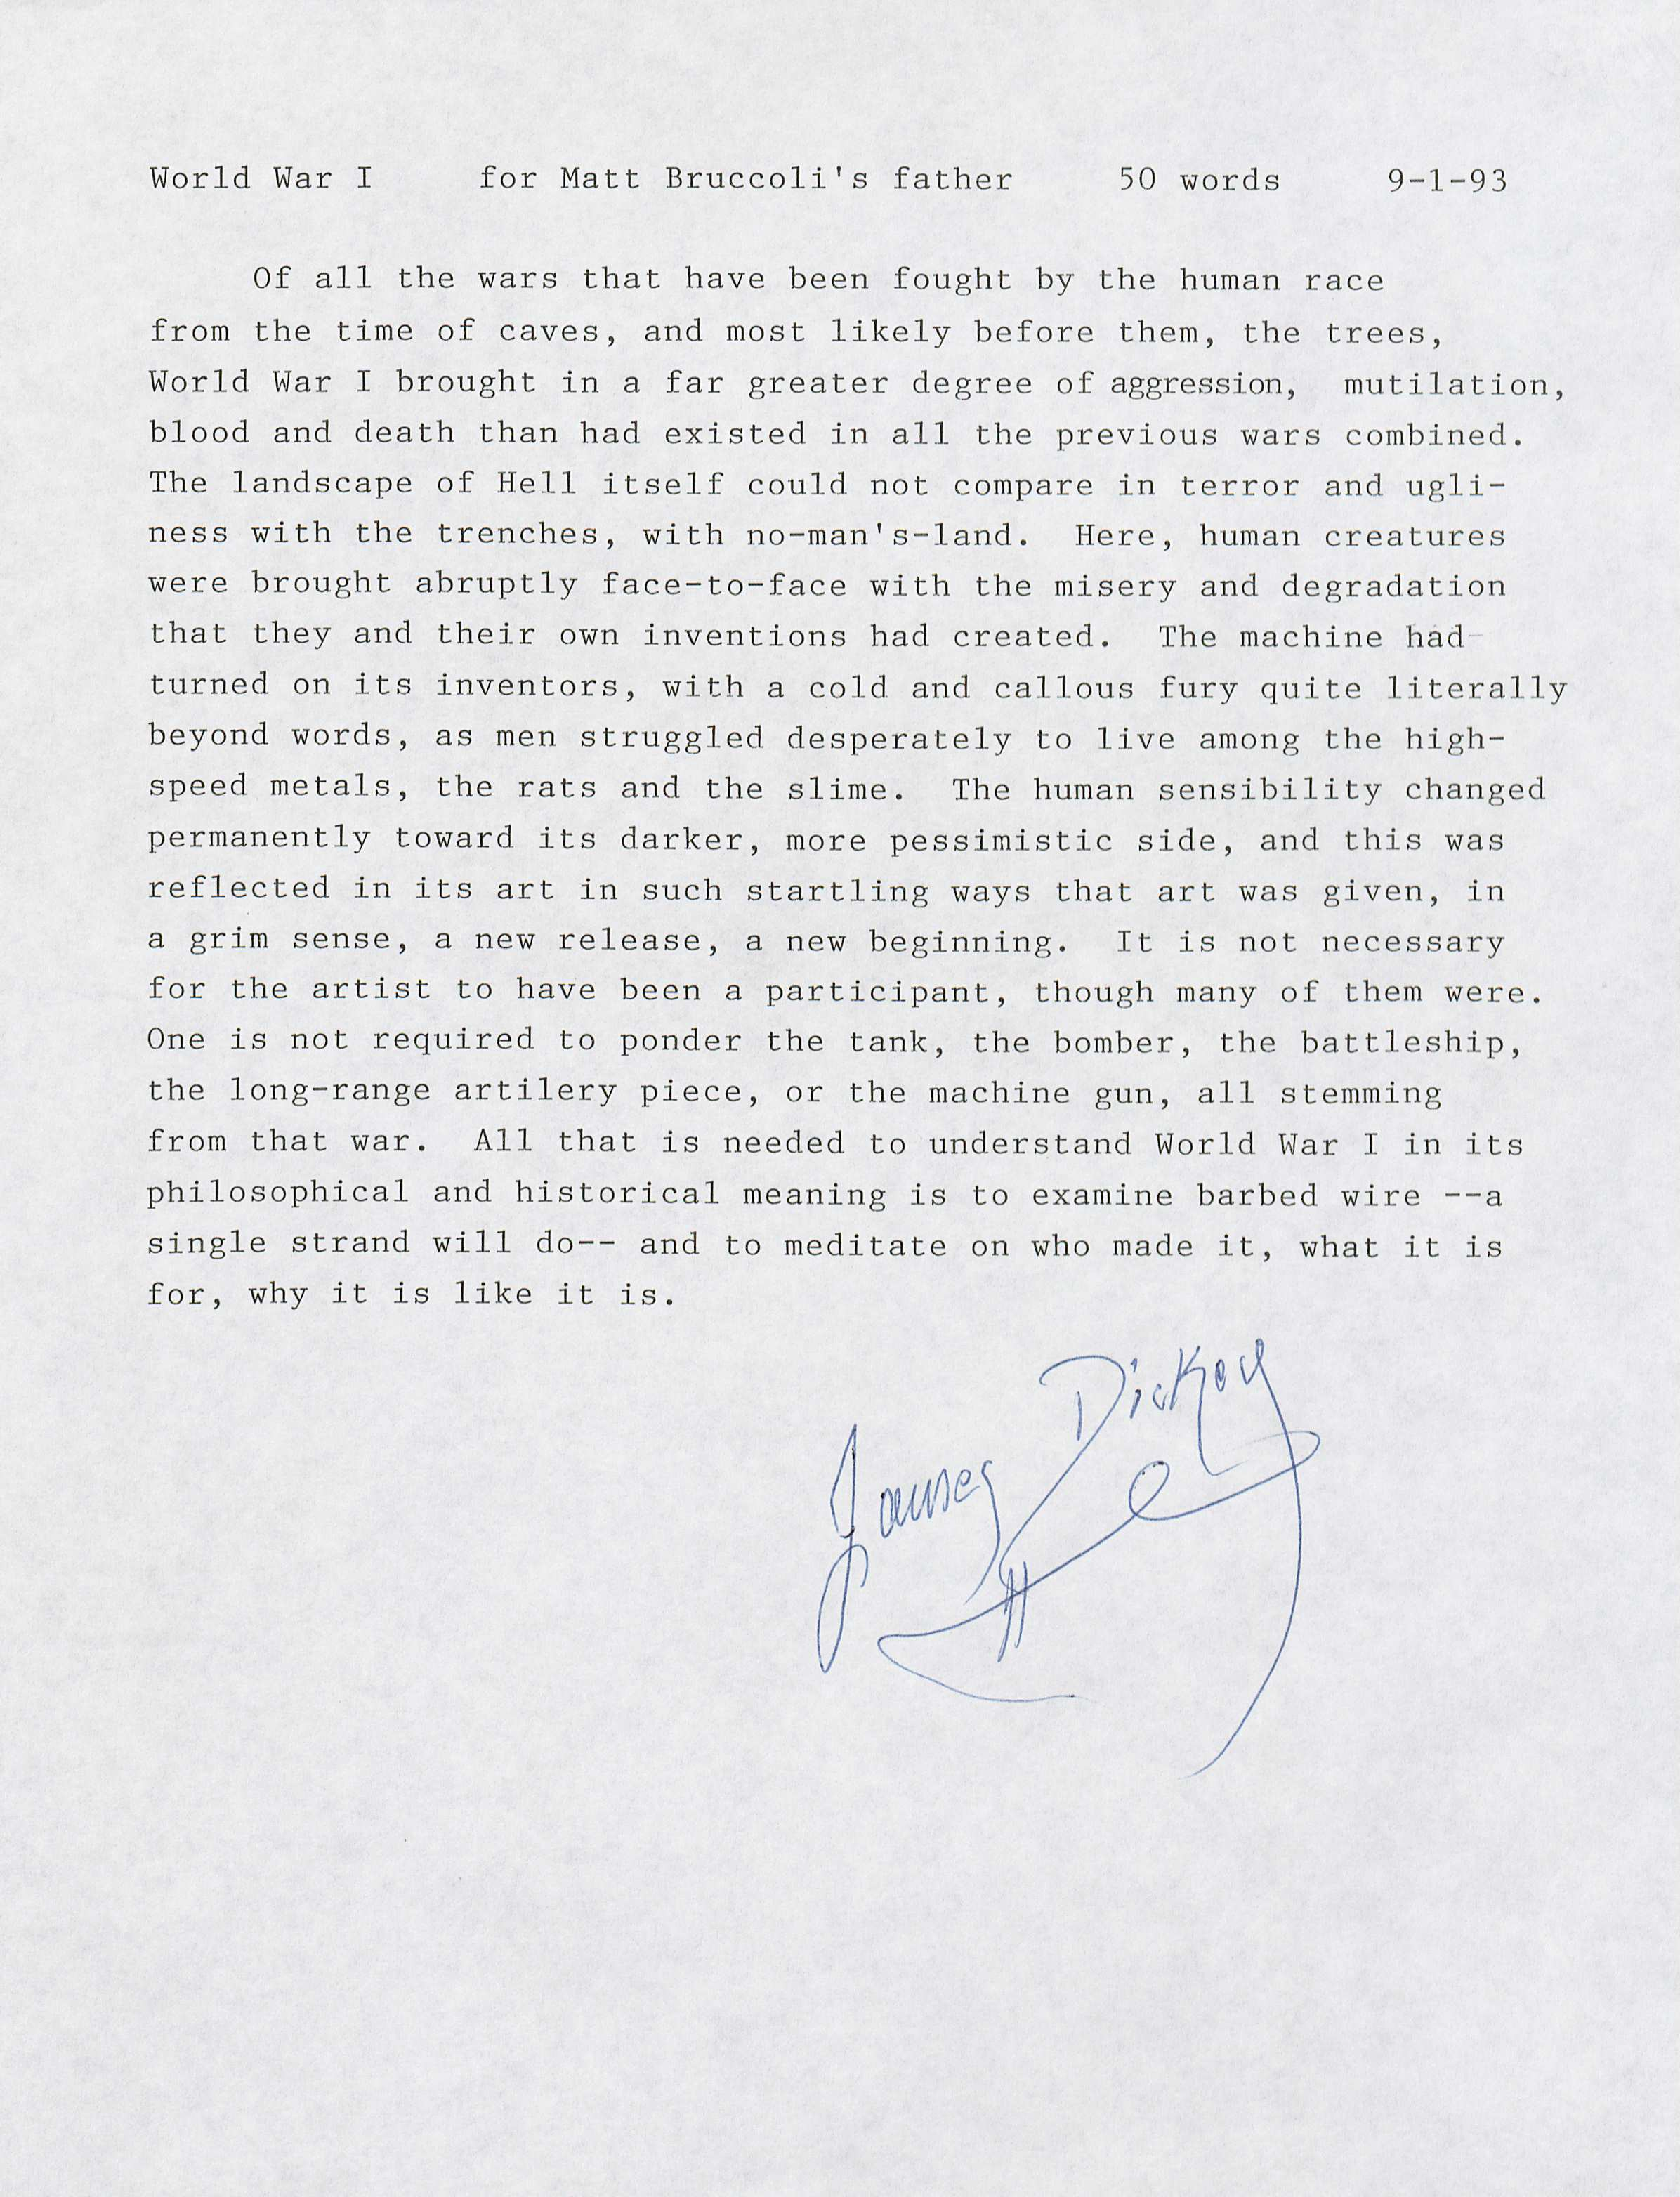 "Dickey, James. ""For Matt Bruccoli's Father."" Letter. World War I Memorabilia. (MSS 10875-s) Bruccoli Great War Collection. Gift of Matthew J. Bruccoli, July, 1997  Famous American novelist, James Dickey, through this extremely personal letter, offers a writer's input on the war. This letter looks beyond the simplicities of propaganda and talk about war's more virulent nature. This note does not degrade the enemy in any way, but rather looks at the matter from the perspective of a human being to express the atrocities and horrors that war imposes on mankind."